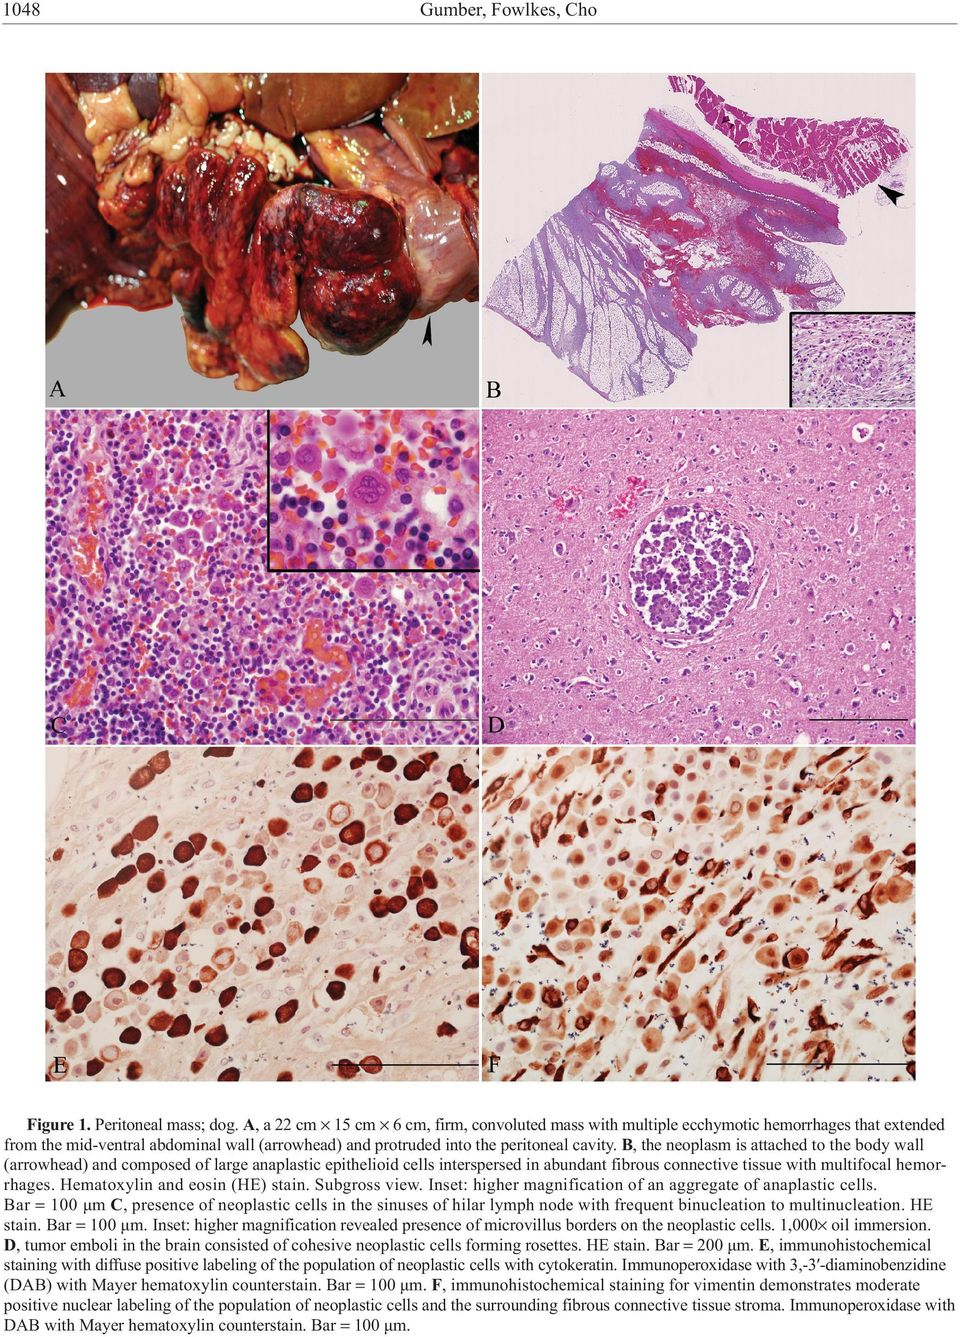 B, the neoplasm is attached to the body wall (arrowhead) and composed of large anaplastic epithelioid cells interspersed in abundant fibrous connective tissue with multifocal hemorrhages.